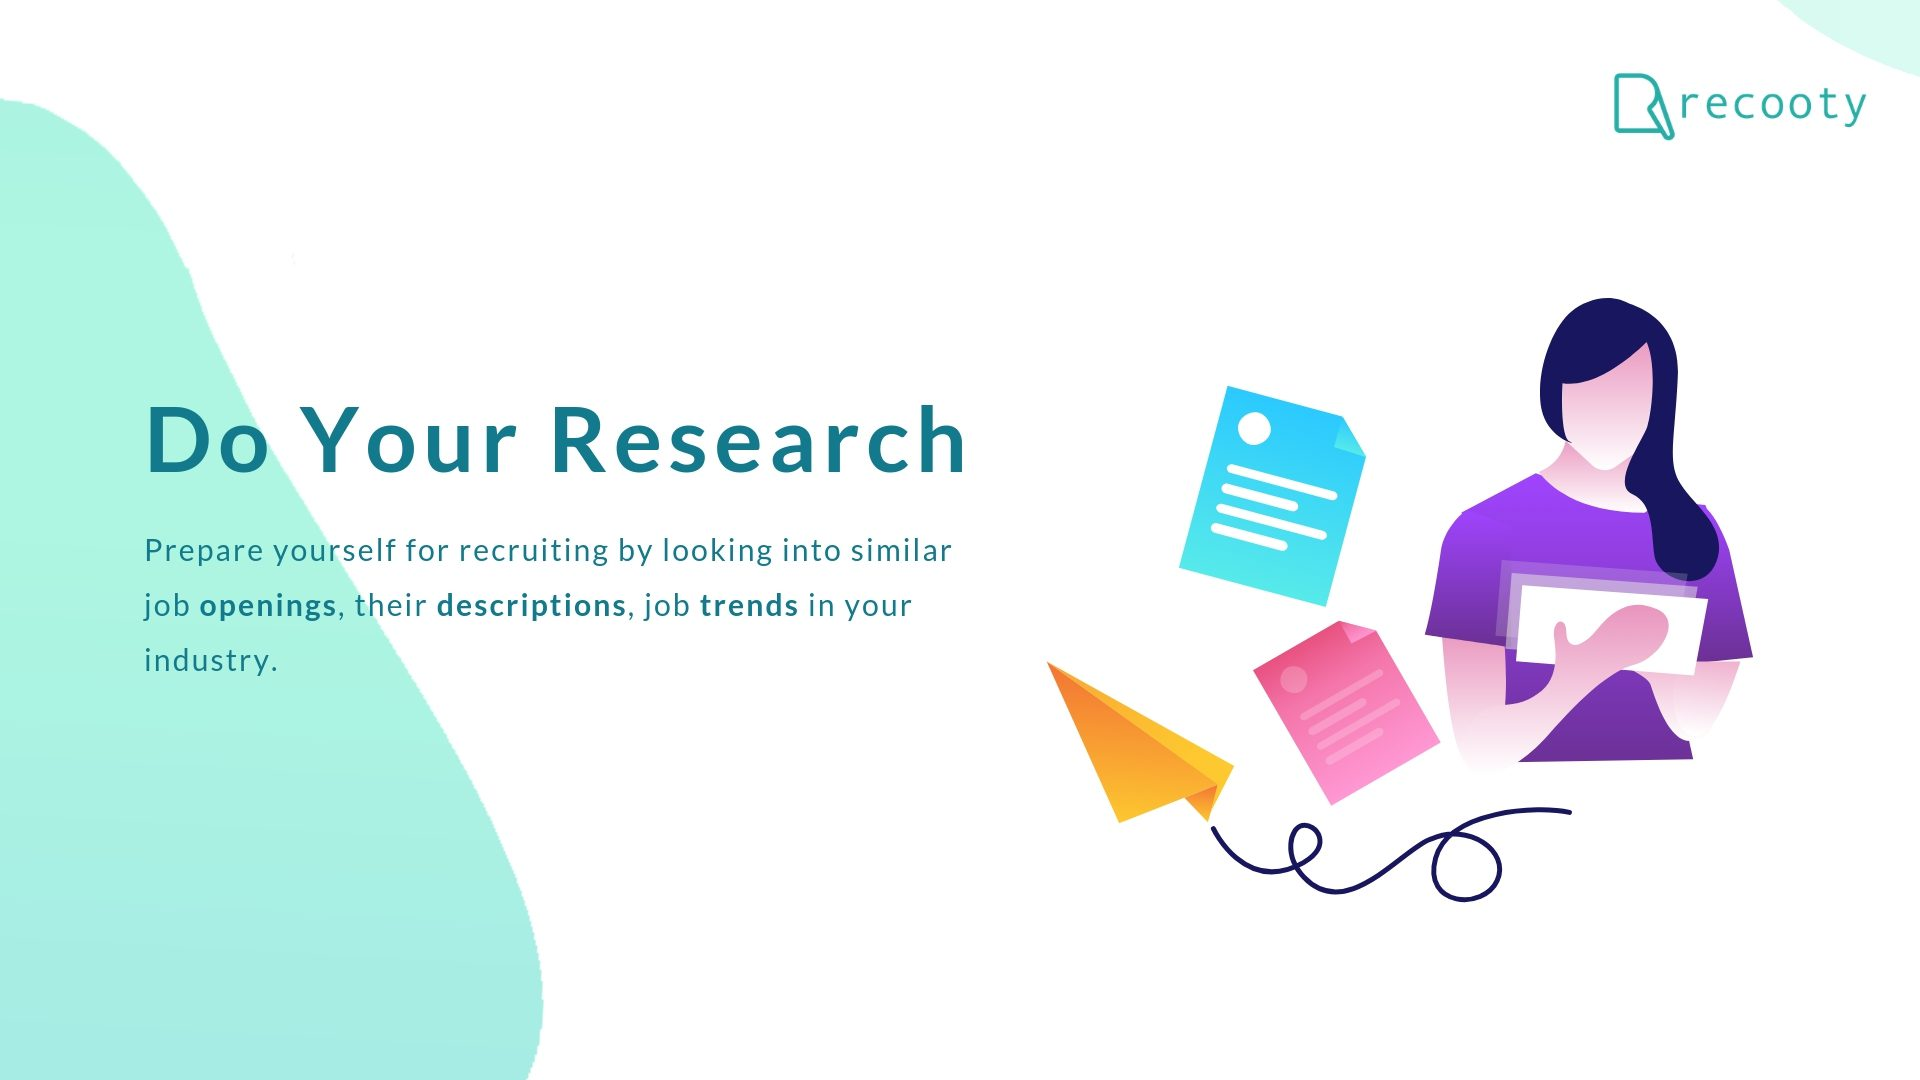 Job opening research